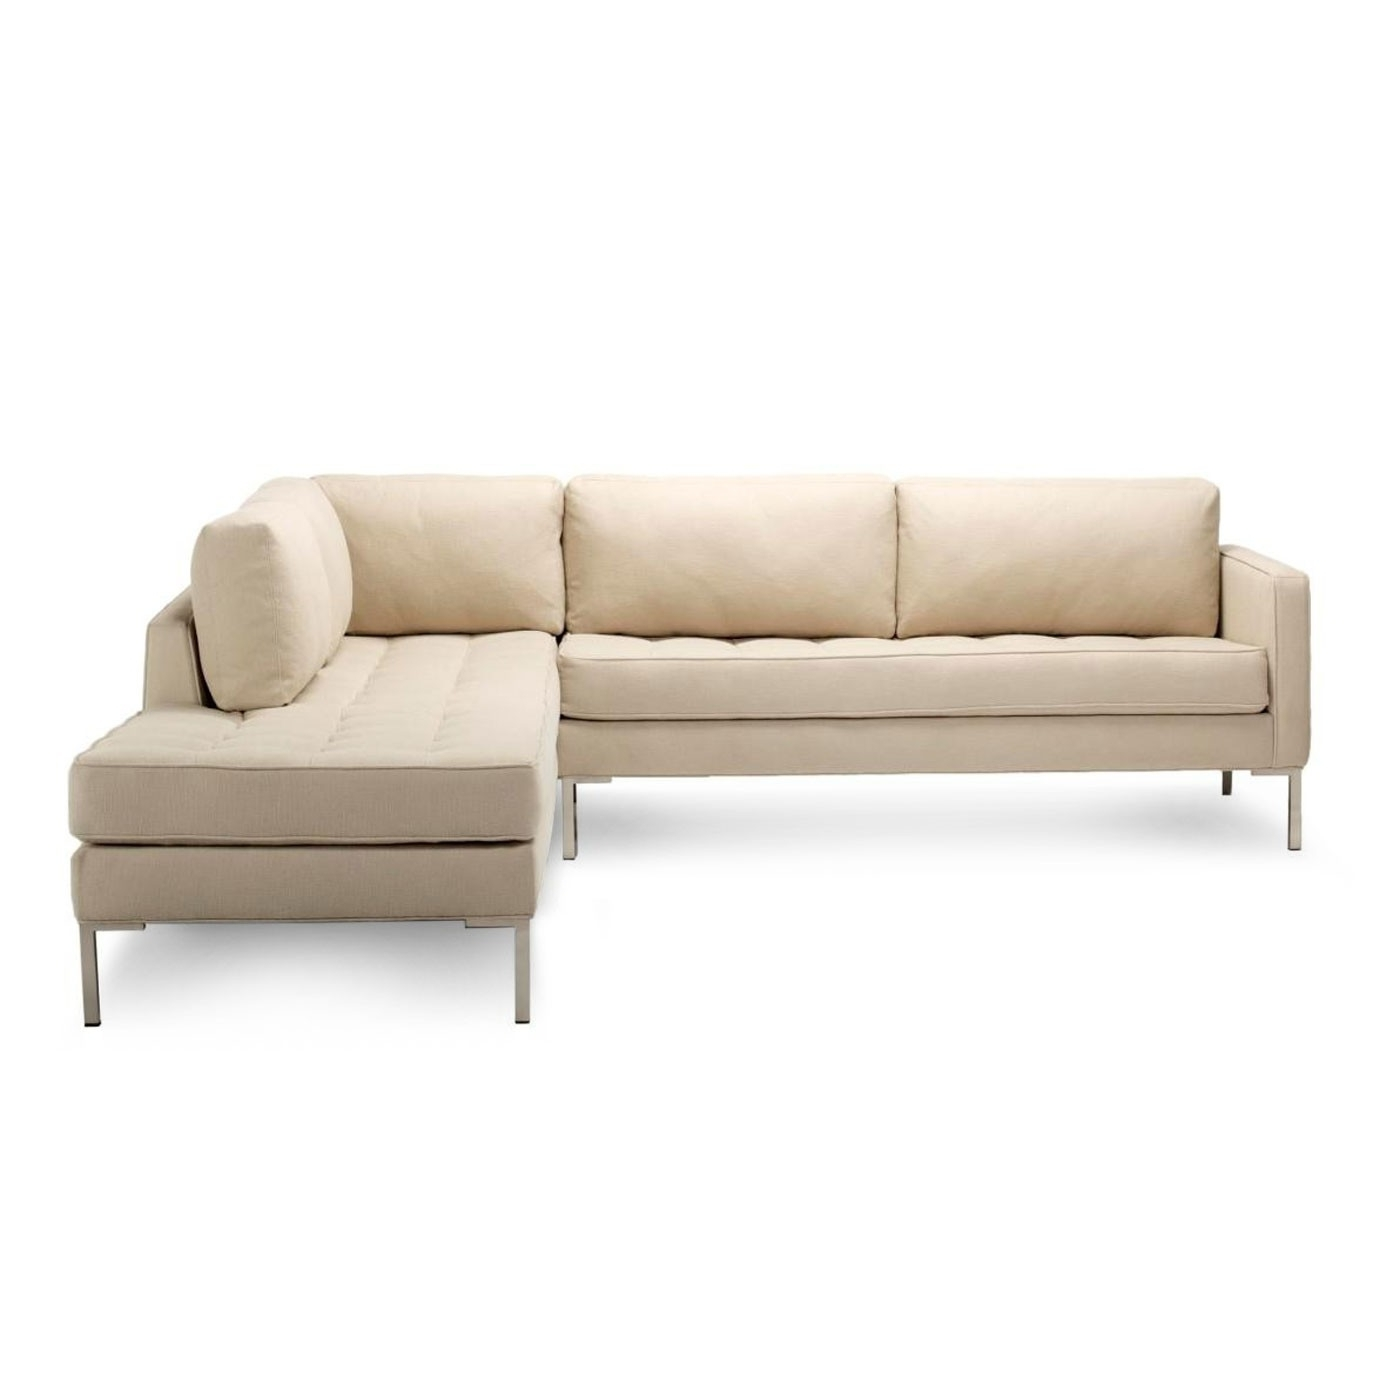 Jcpenney Sectional Sofas With Regard To Favorite Sofas And Sectionals – Cleanupflorida (View 13 of 15)